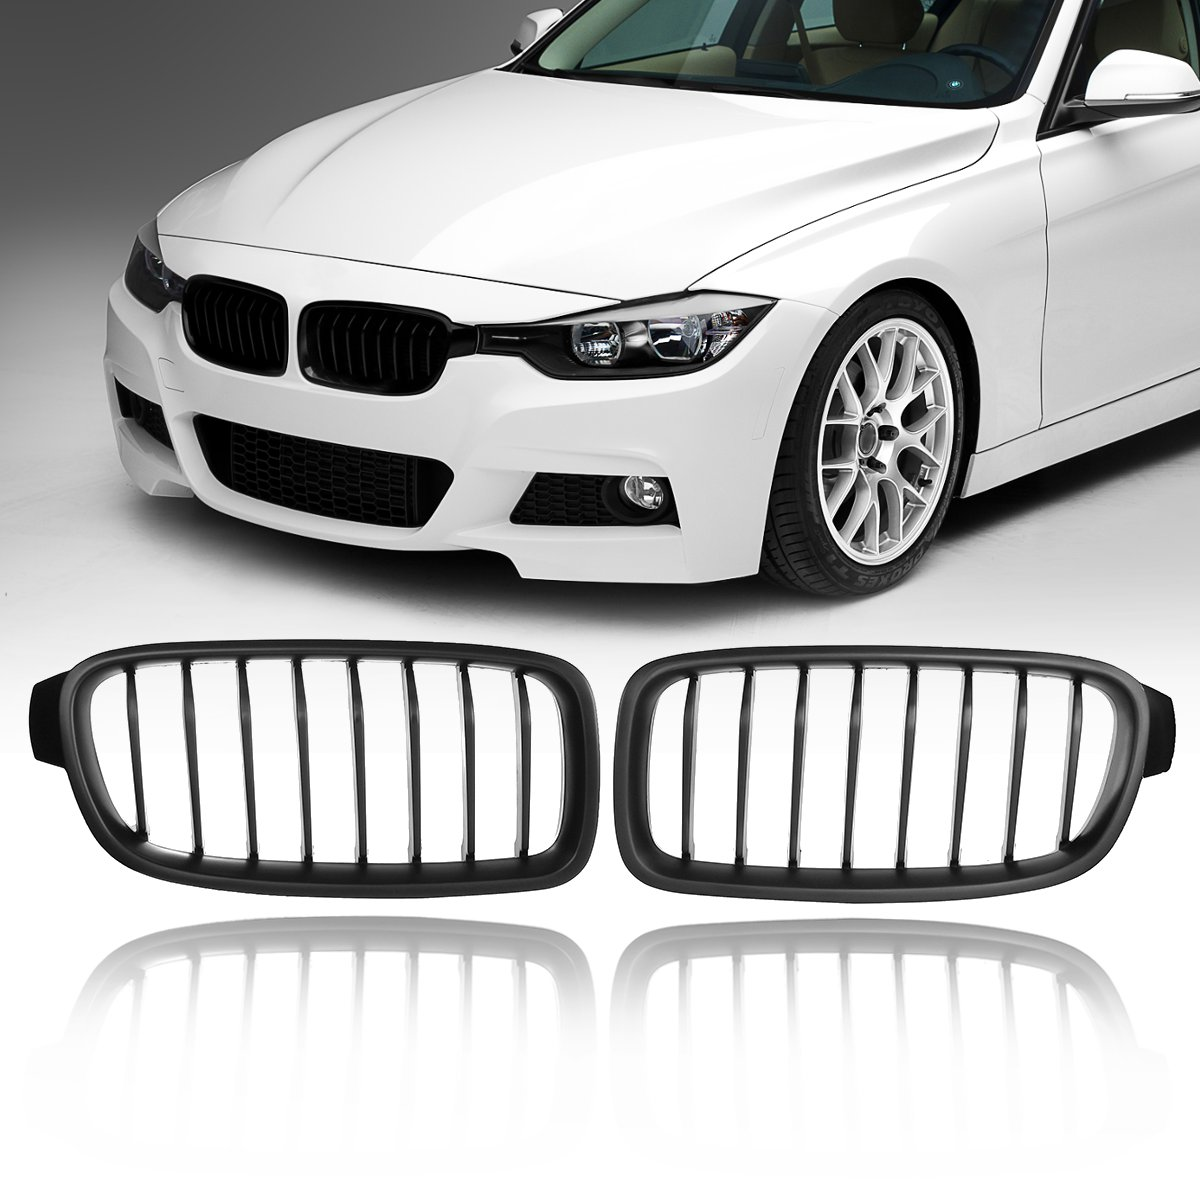 1pair Matte Black For Bmw F30 F31 F35 3 Series Front Kidney Grill Grilles 2012 2013 2014 2015 2016 2017 Racing Grills Aliexpress